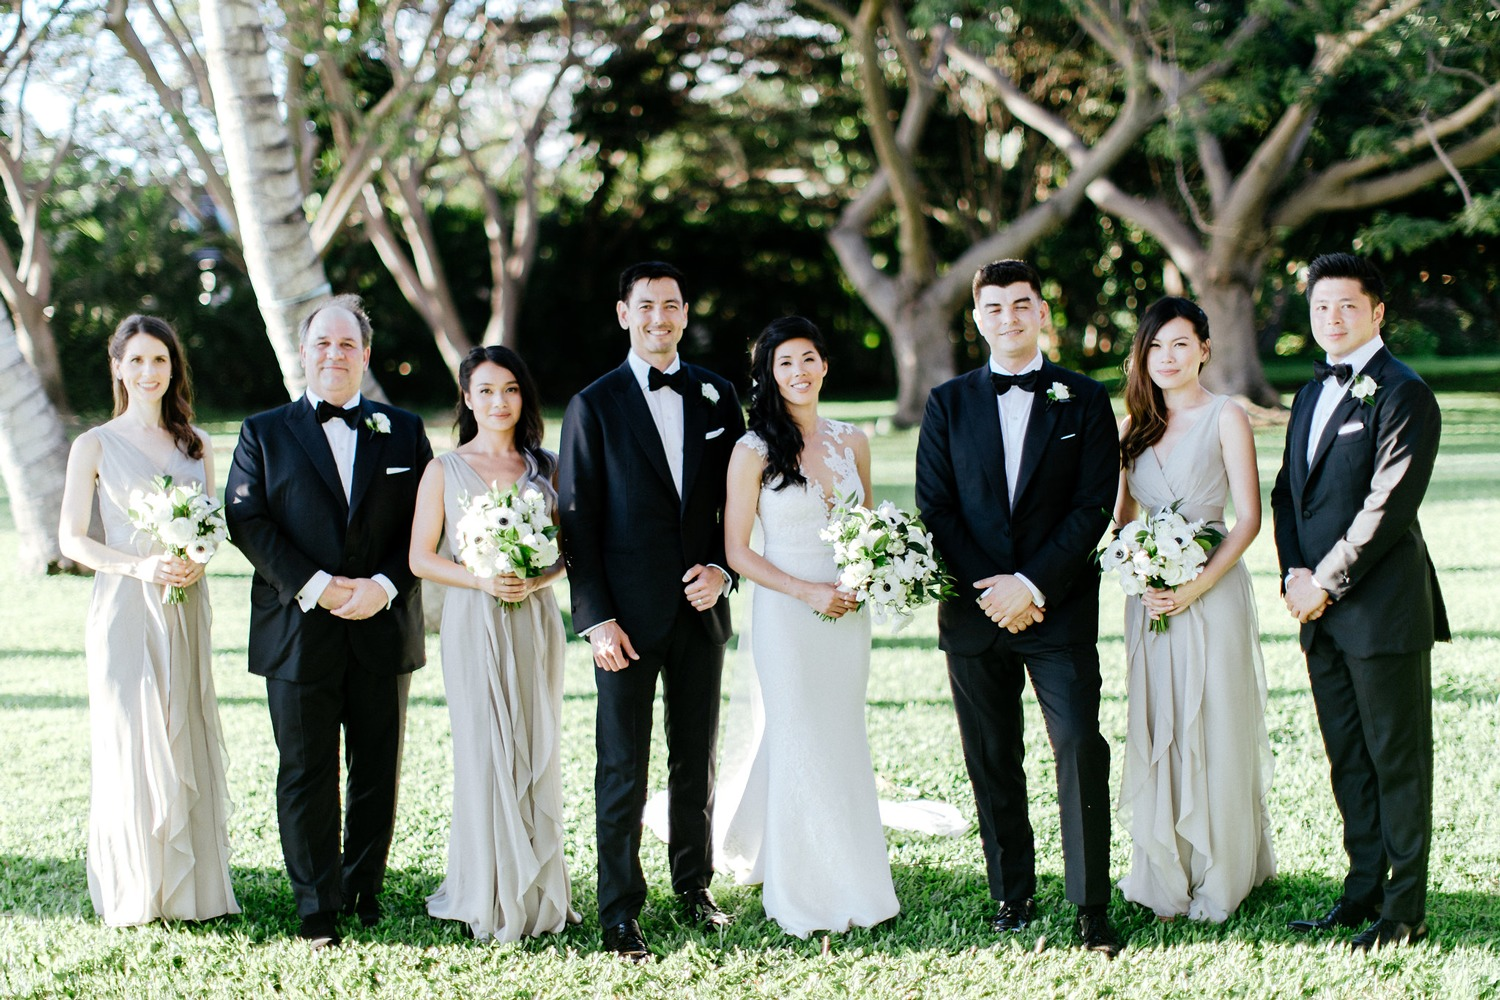 Bridal Party Maui | What to wear to a destination wedding | Maui's Angels Blog | Maui's Angels